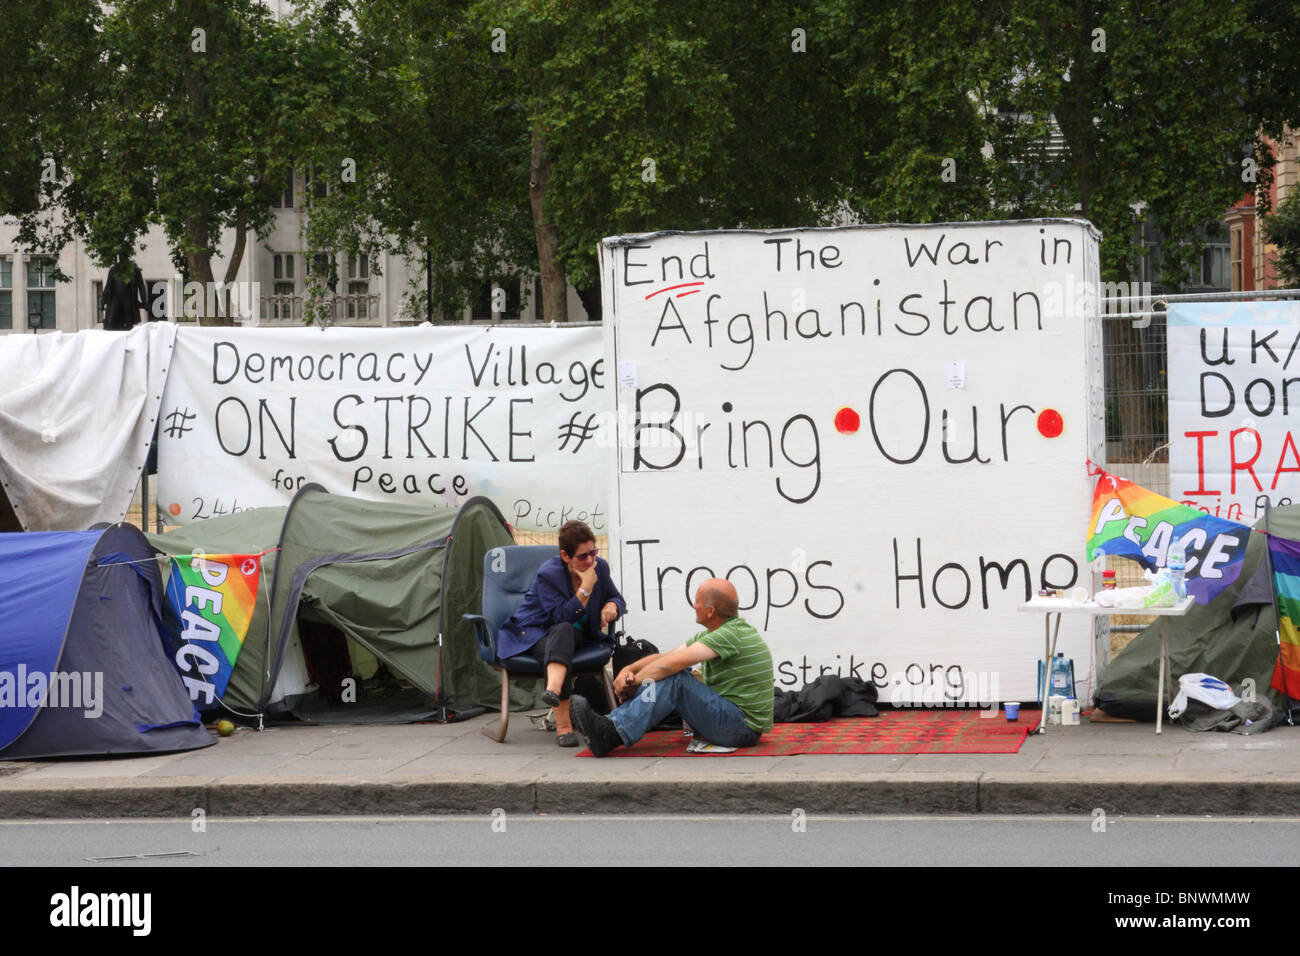 An anti Afghanistan war protest at the peace camp in Parliament Square, Westminster, London, England, U.K. Stock Photo